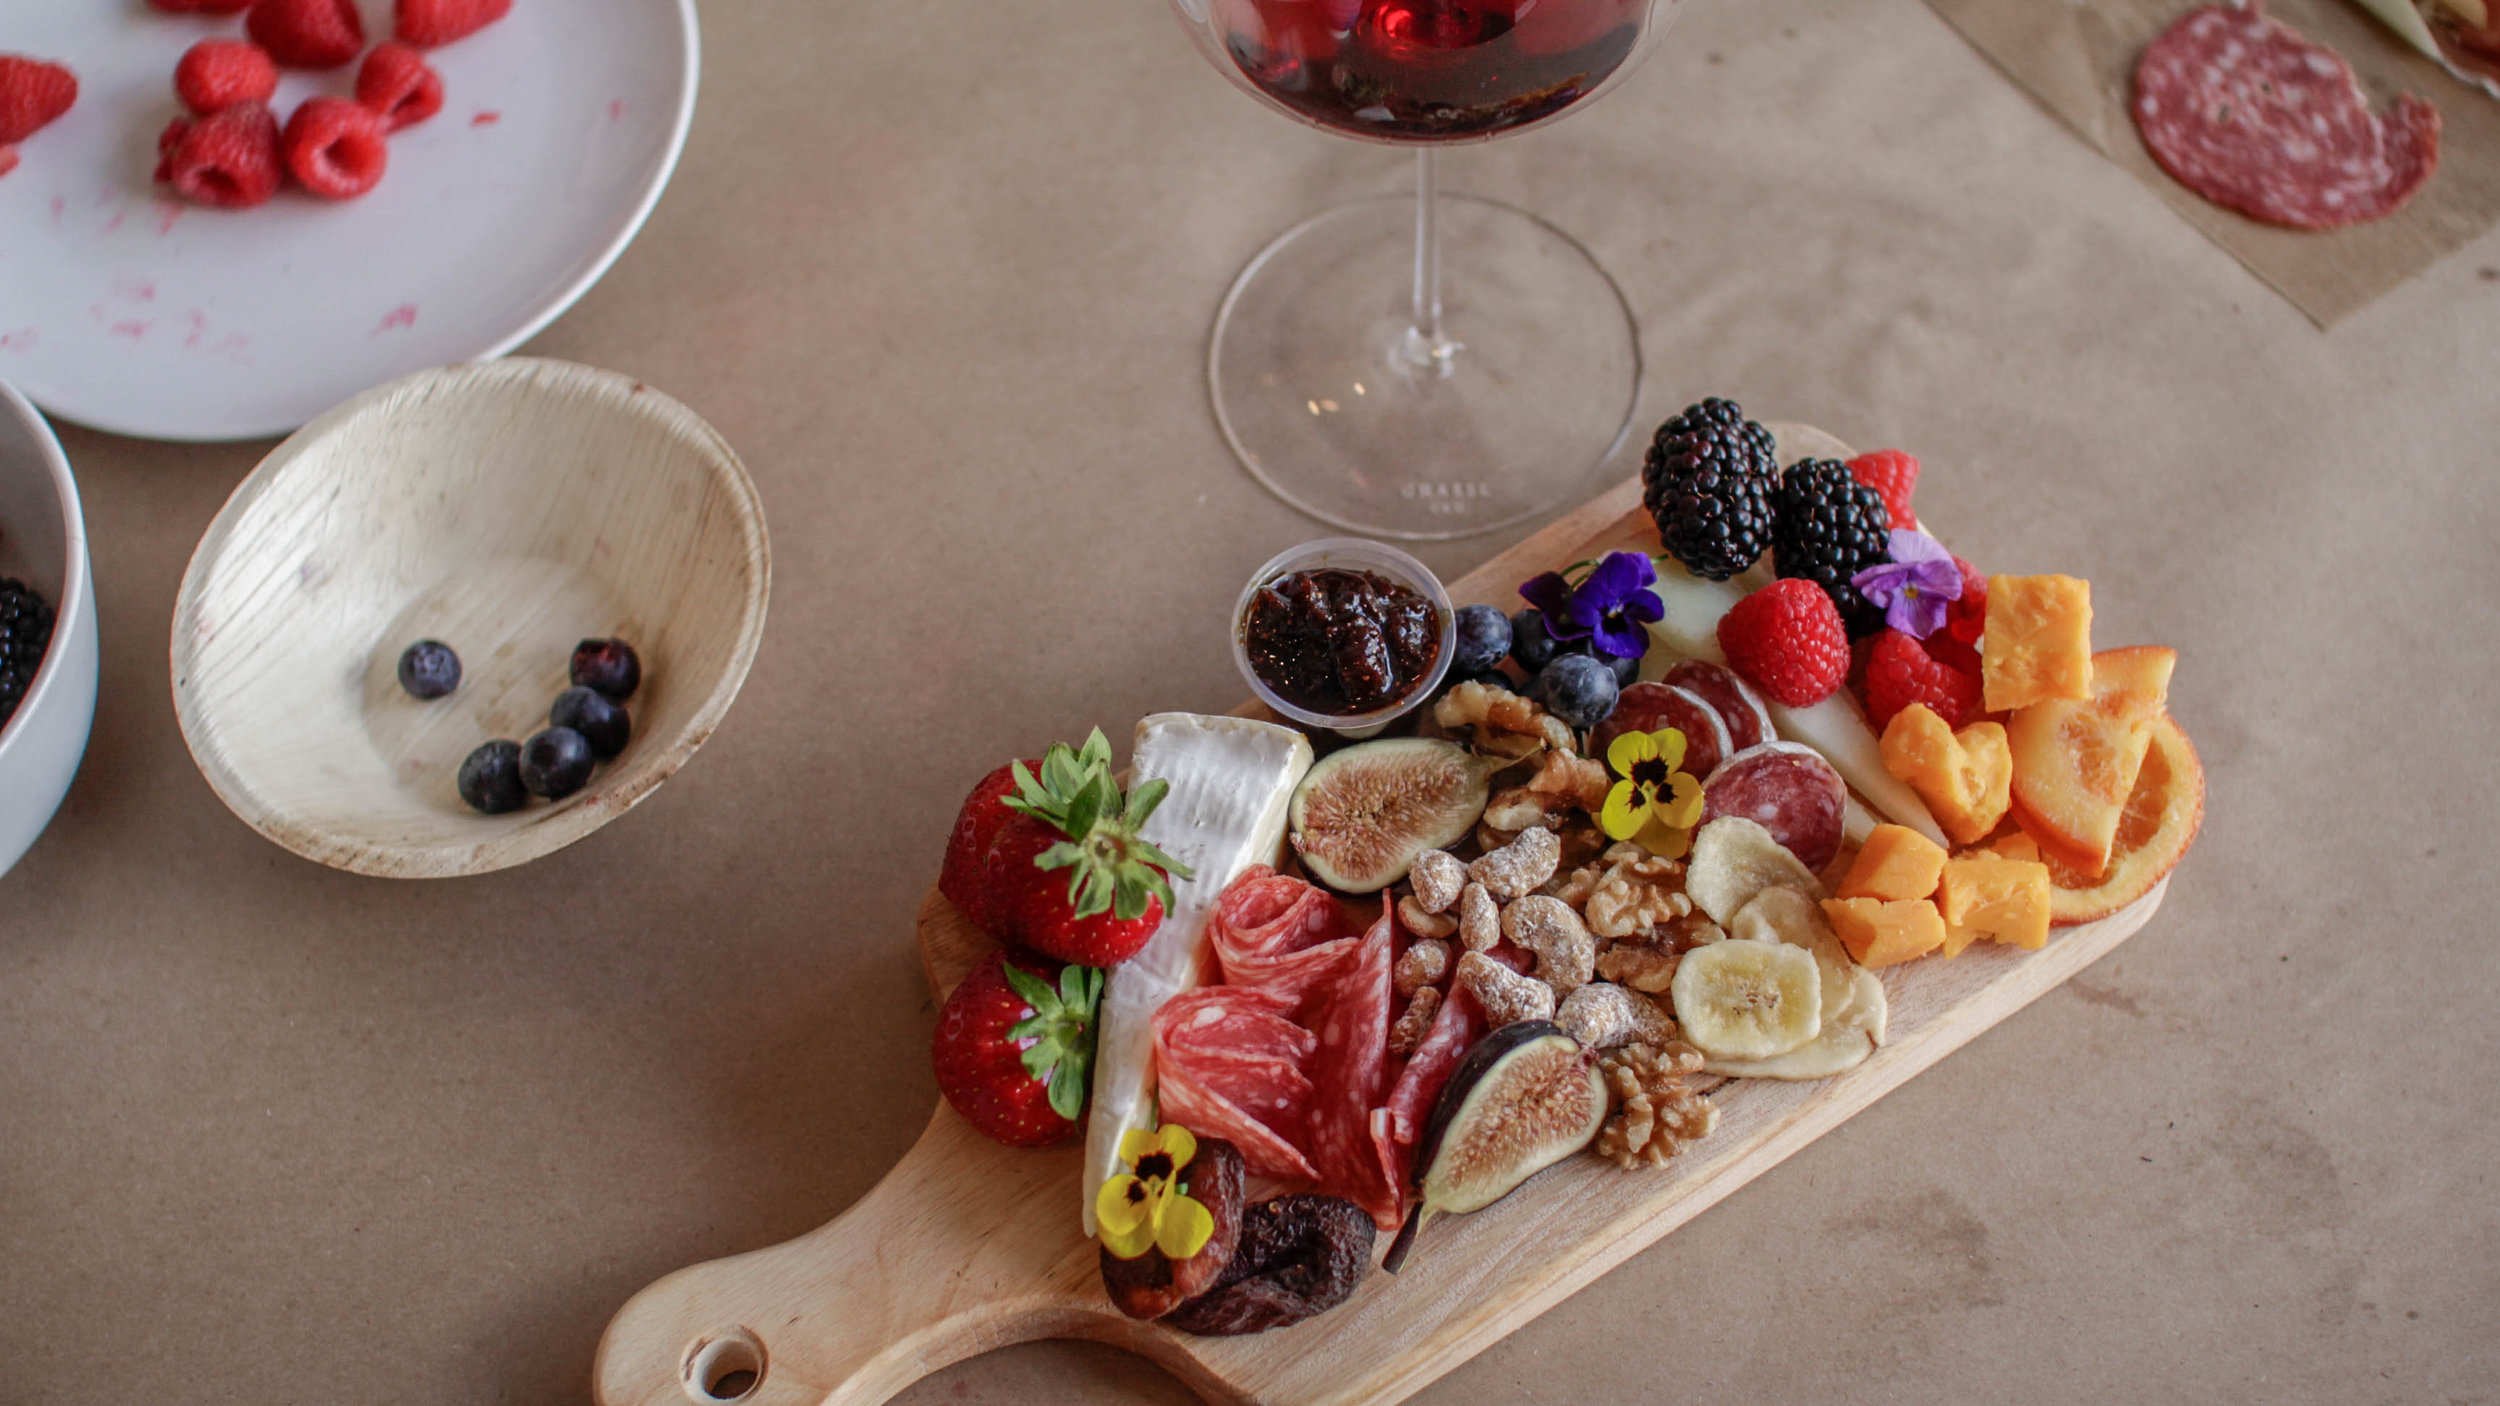 Stunning charcuterie board assembly and photography